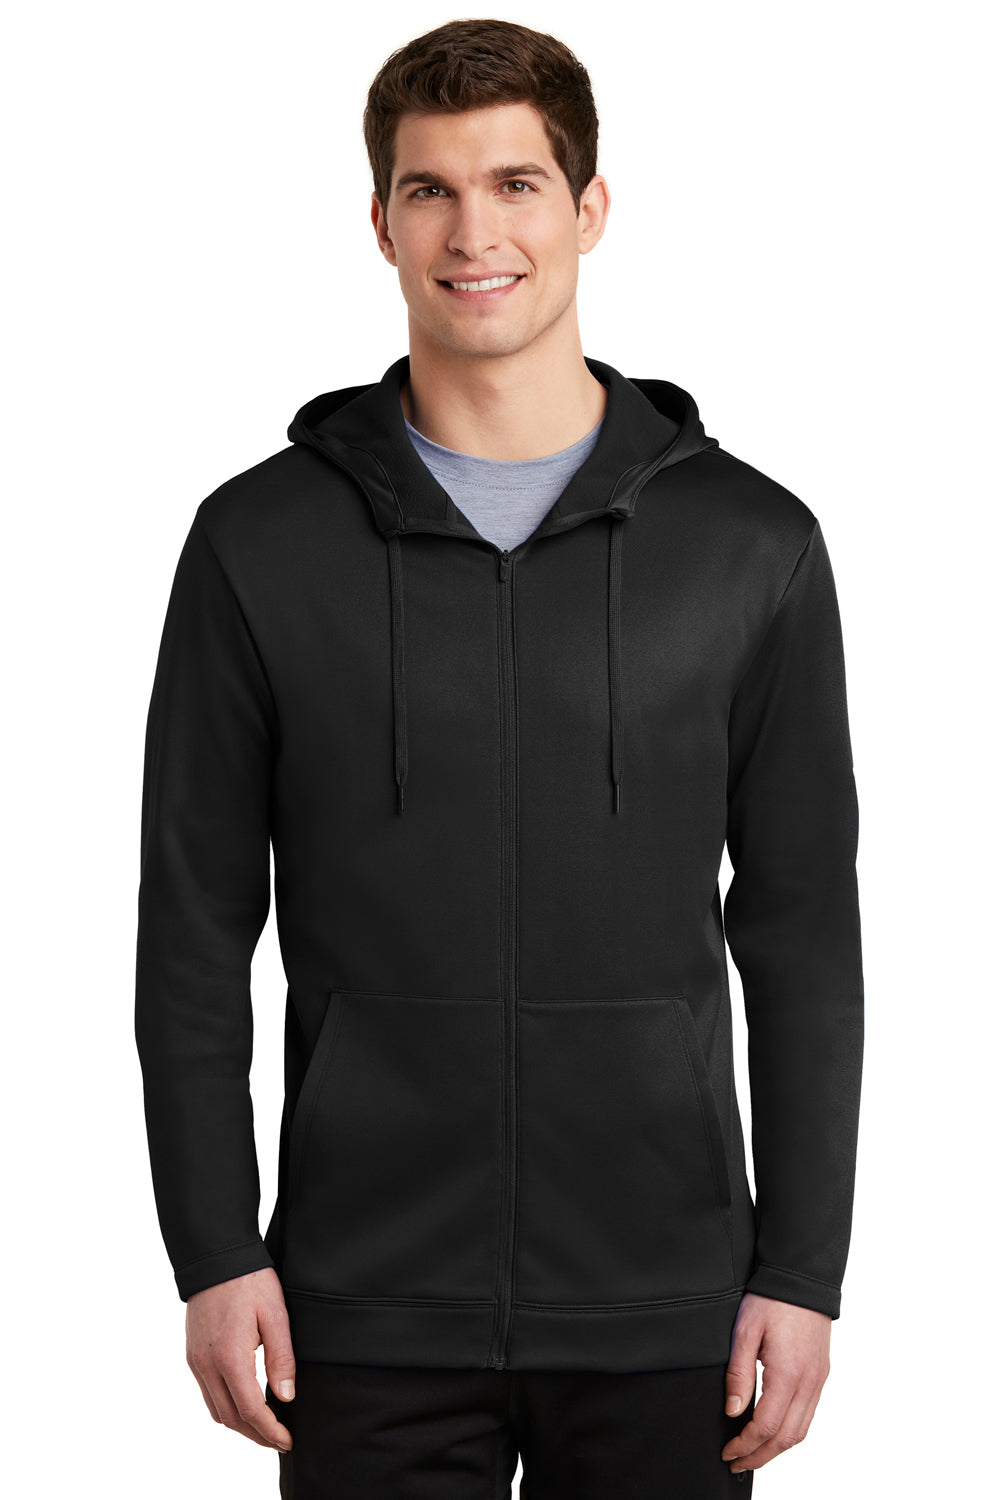 Nike NKAH6259 Mens Therma-Fit Fleece Full Zip Hooded Sweatshirt Hoodie Black Front